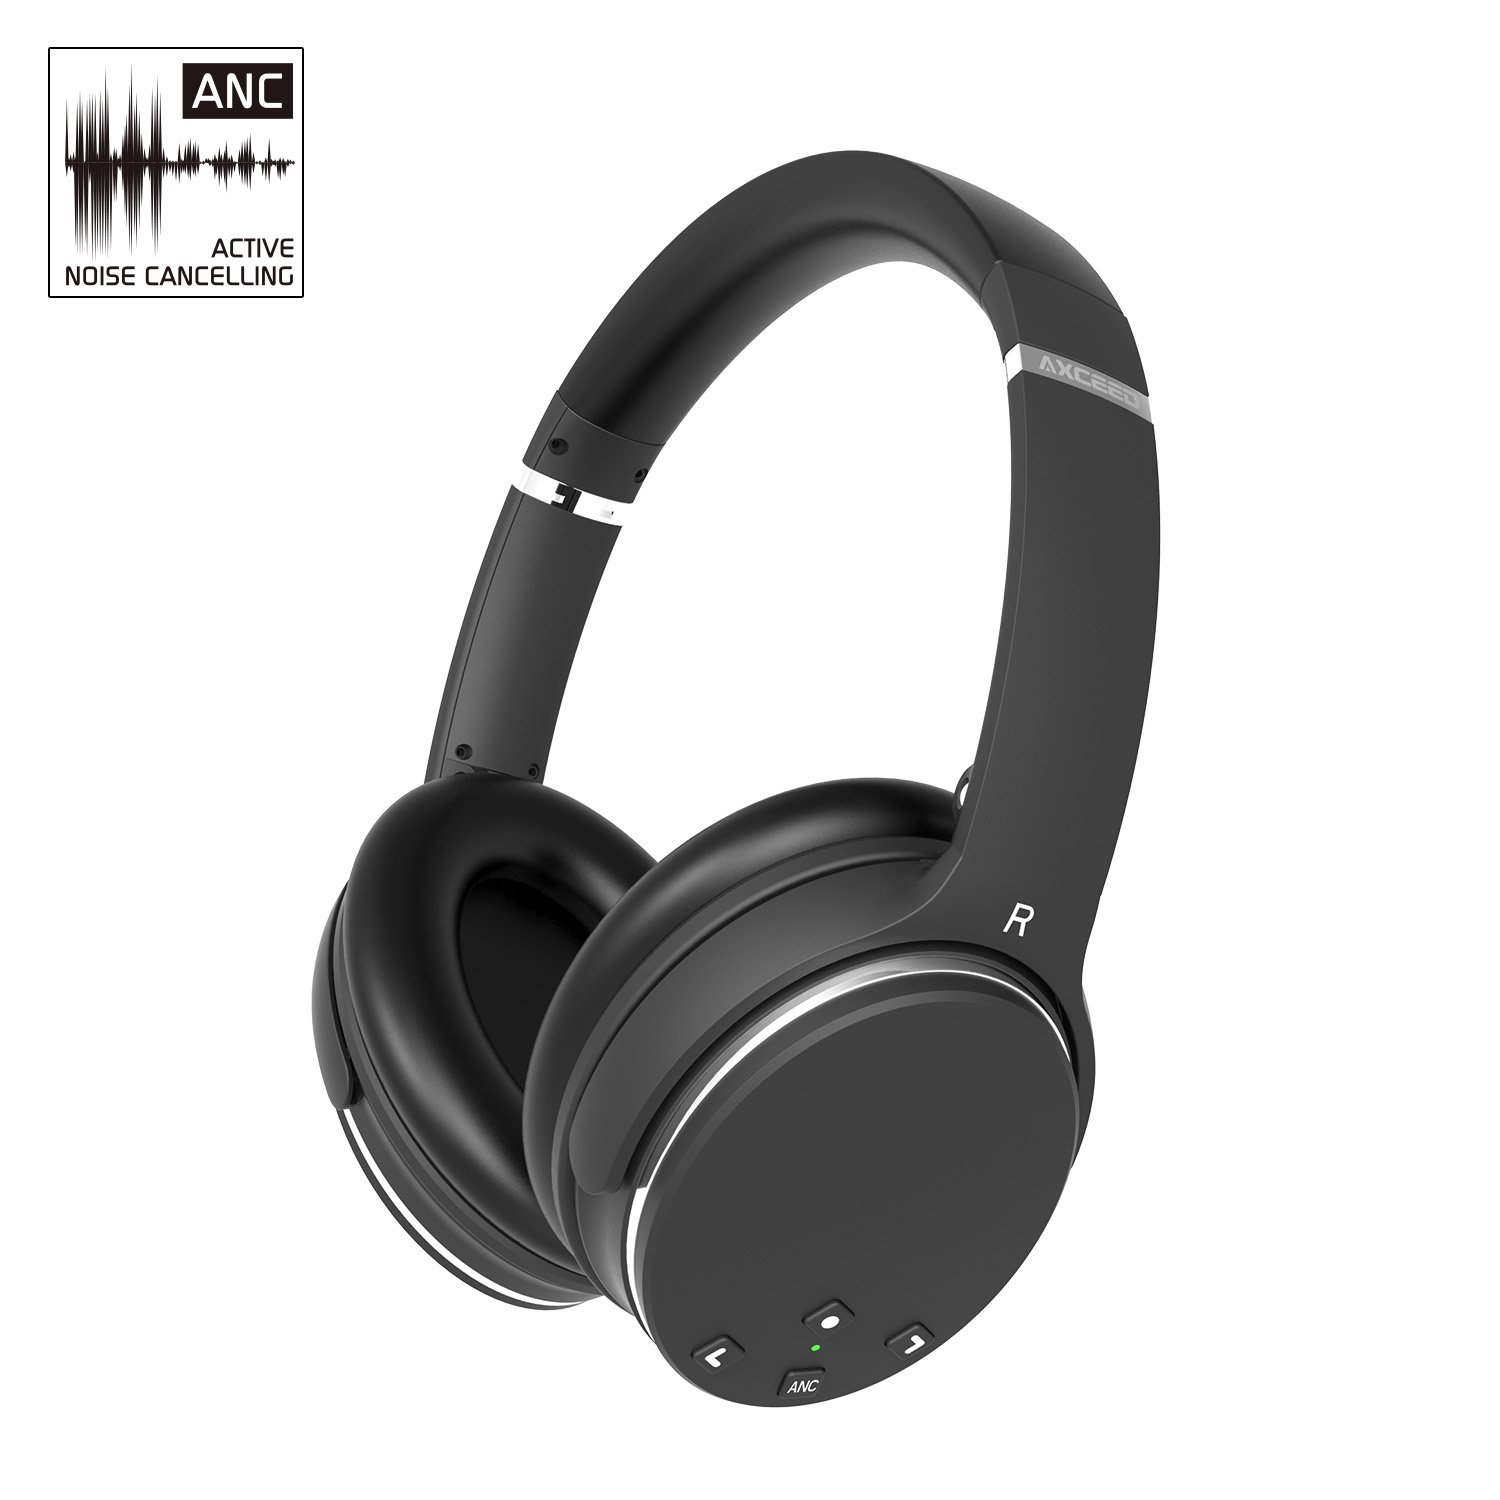 Amazon.com: Active Noise Cancelling Headphones The headphones we use for doing video production with.